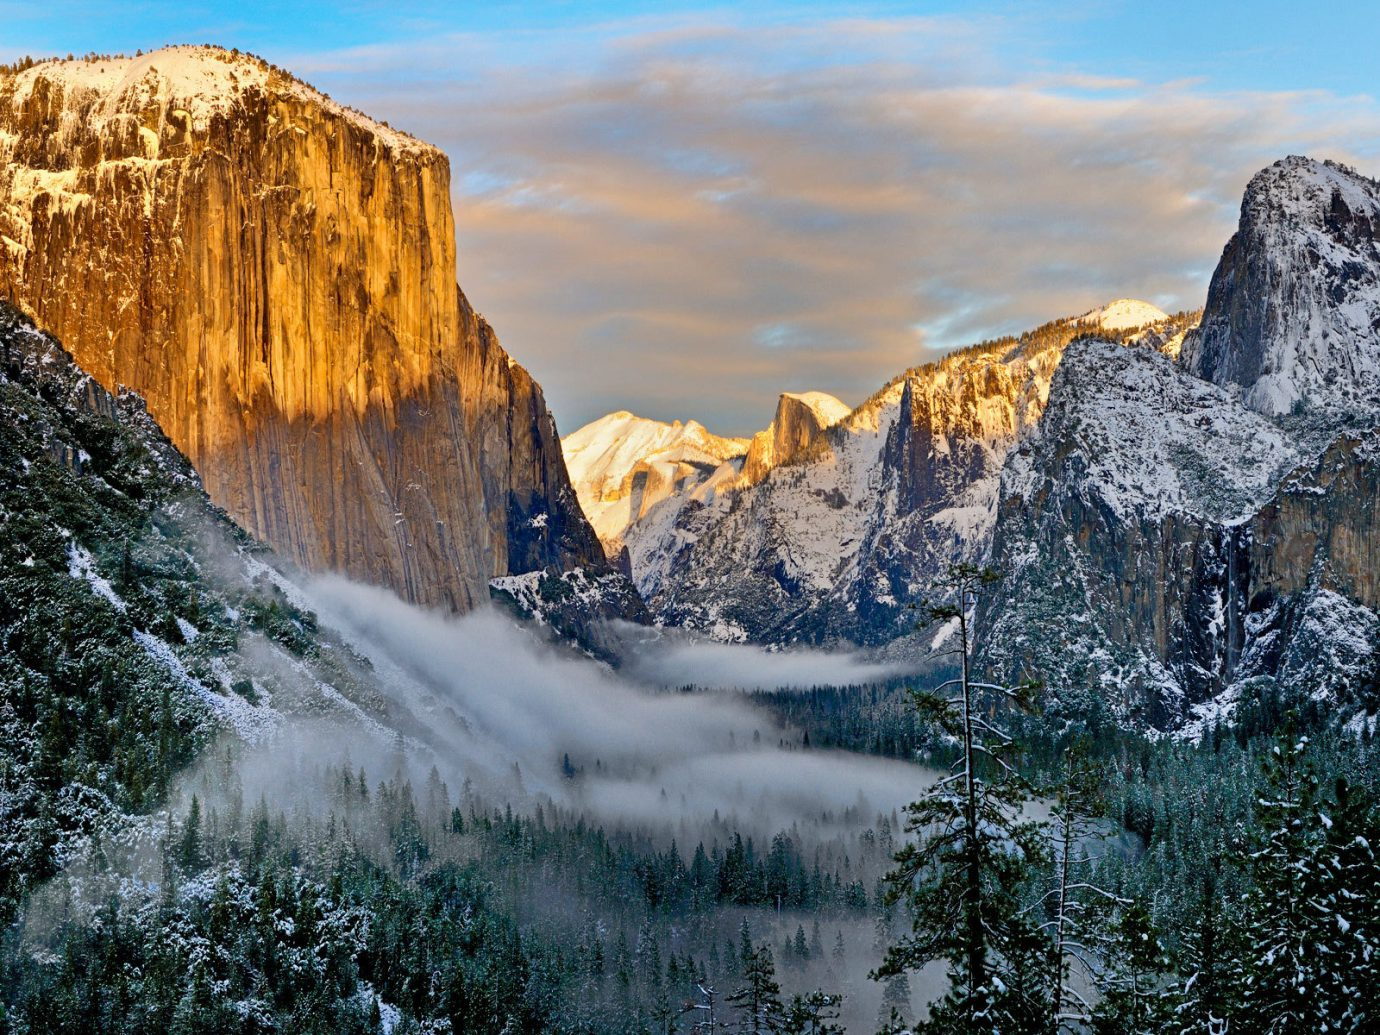 Trip Ideas outdoor Nature sky mountainous landforms landform geographical feature wilderness mountain water rock reflection Winter landscape snow mountain range cliff water feature terrain formation geology national park ice